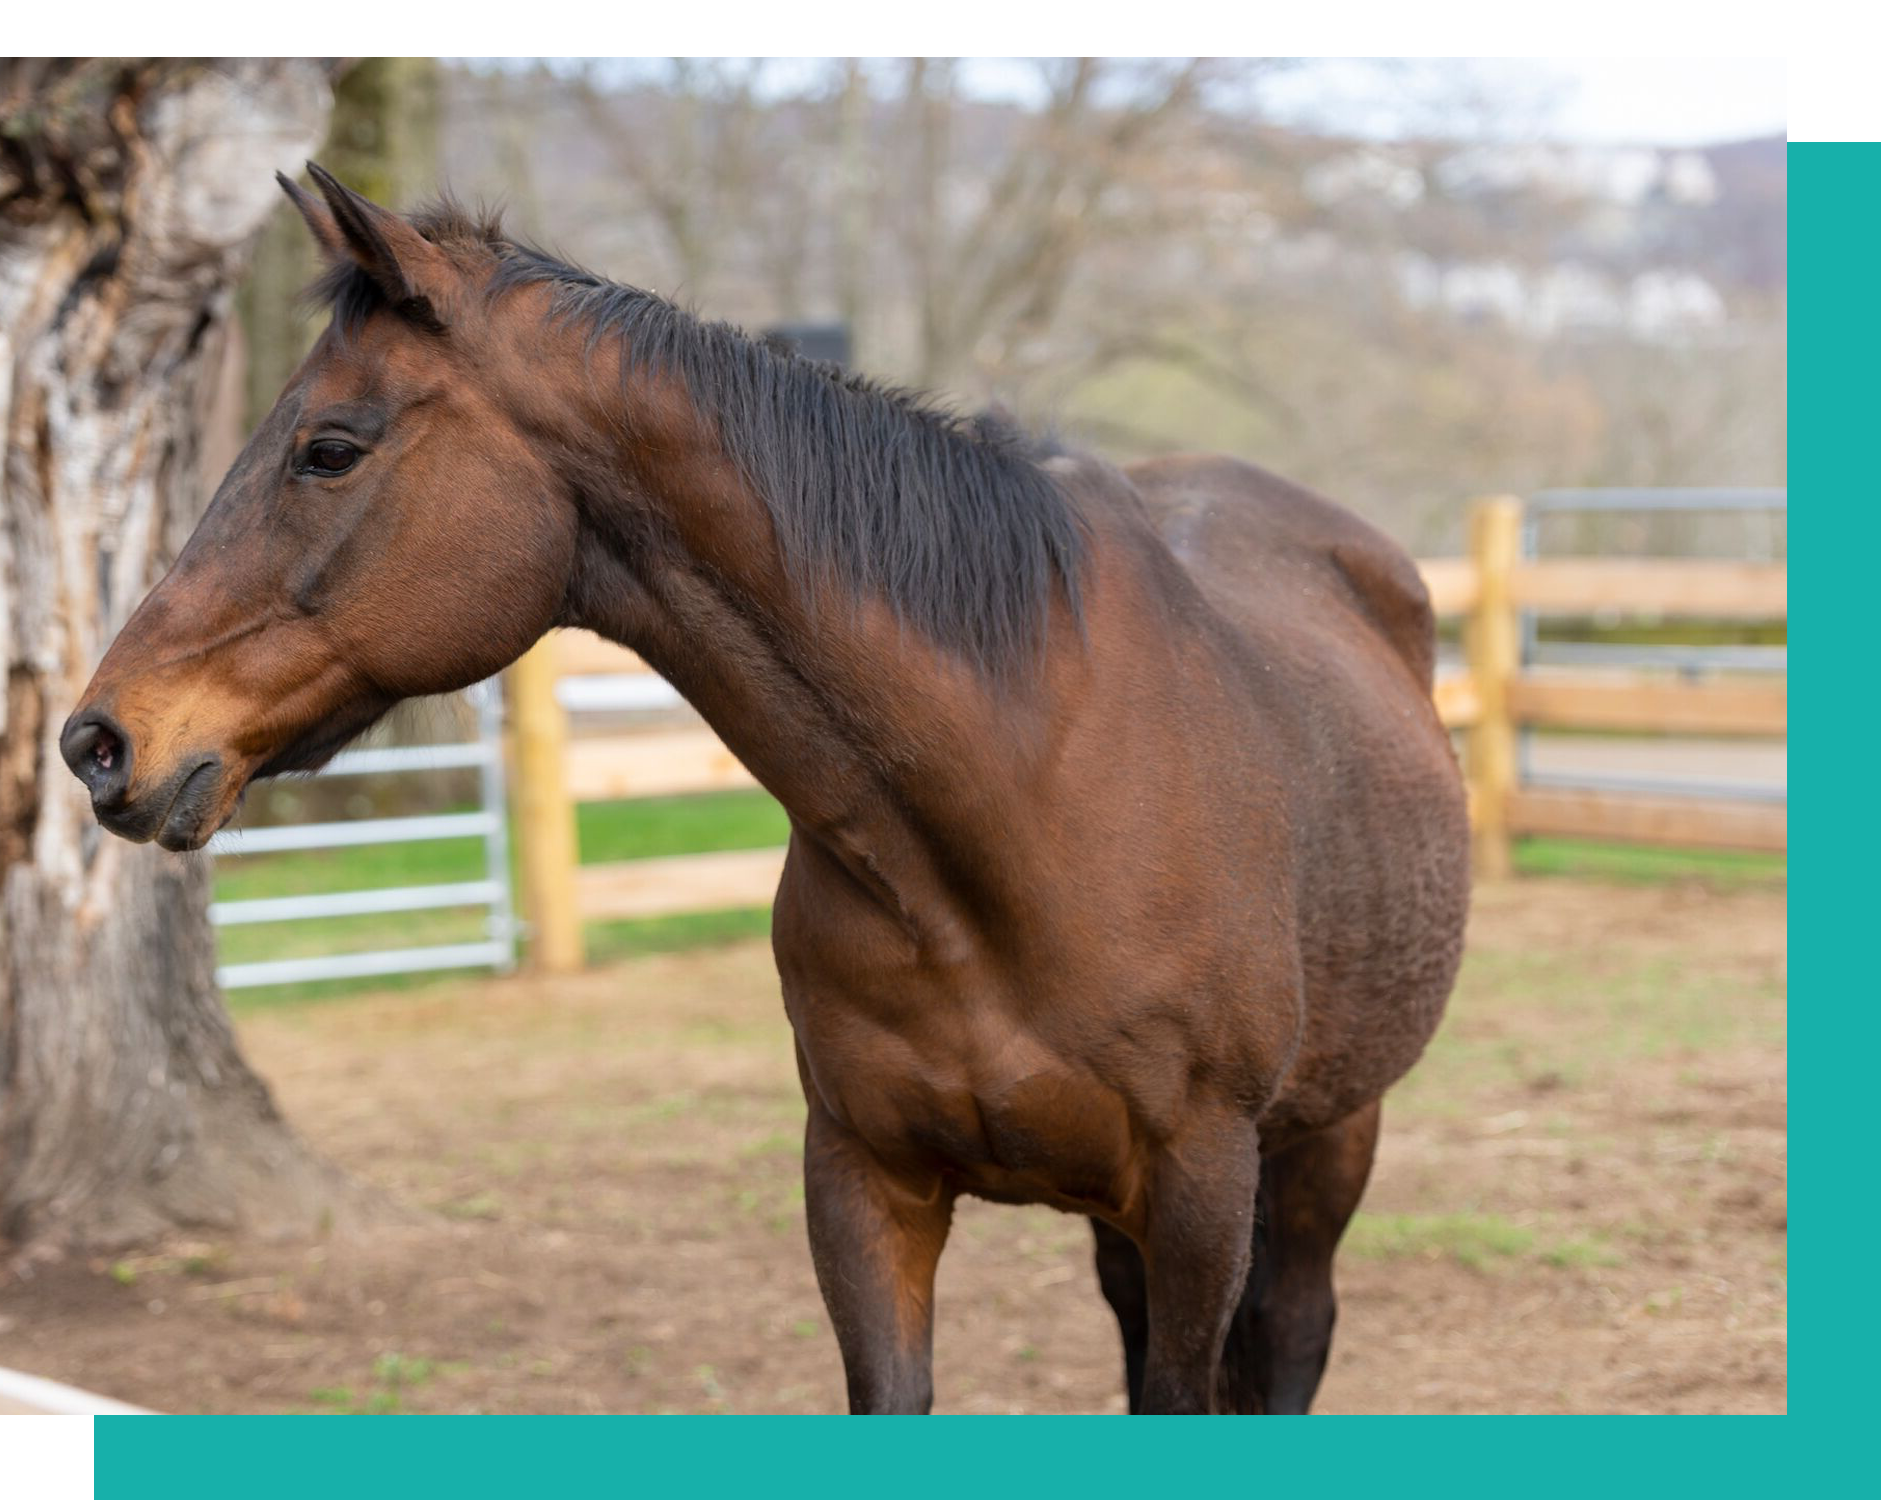 Our herd is our most valuable asset. - The cost to feed, house and care for ONE horse at Pony Power is $12,000 a year. With 22 horses, this is one of our biggest expenses.